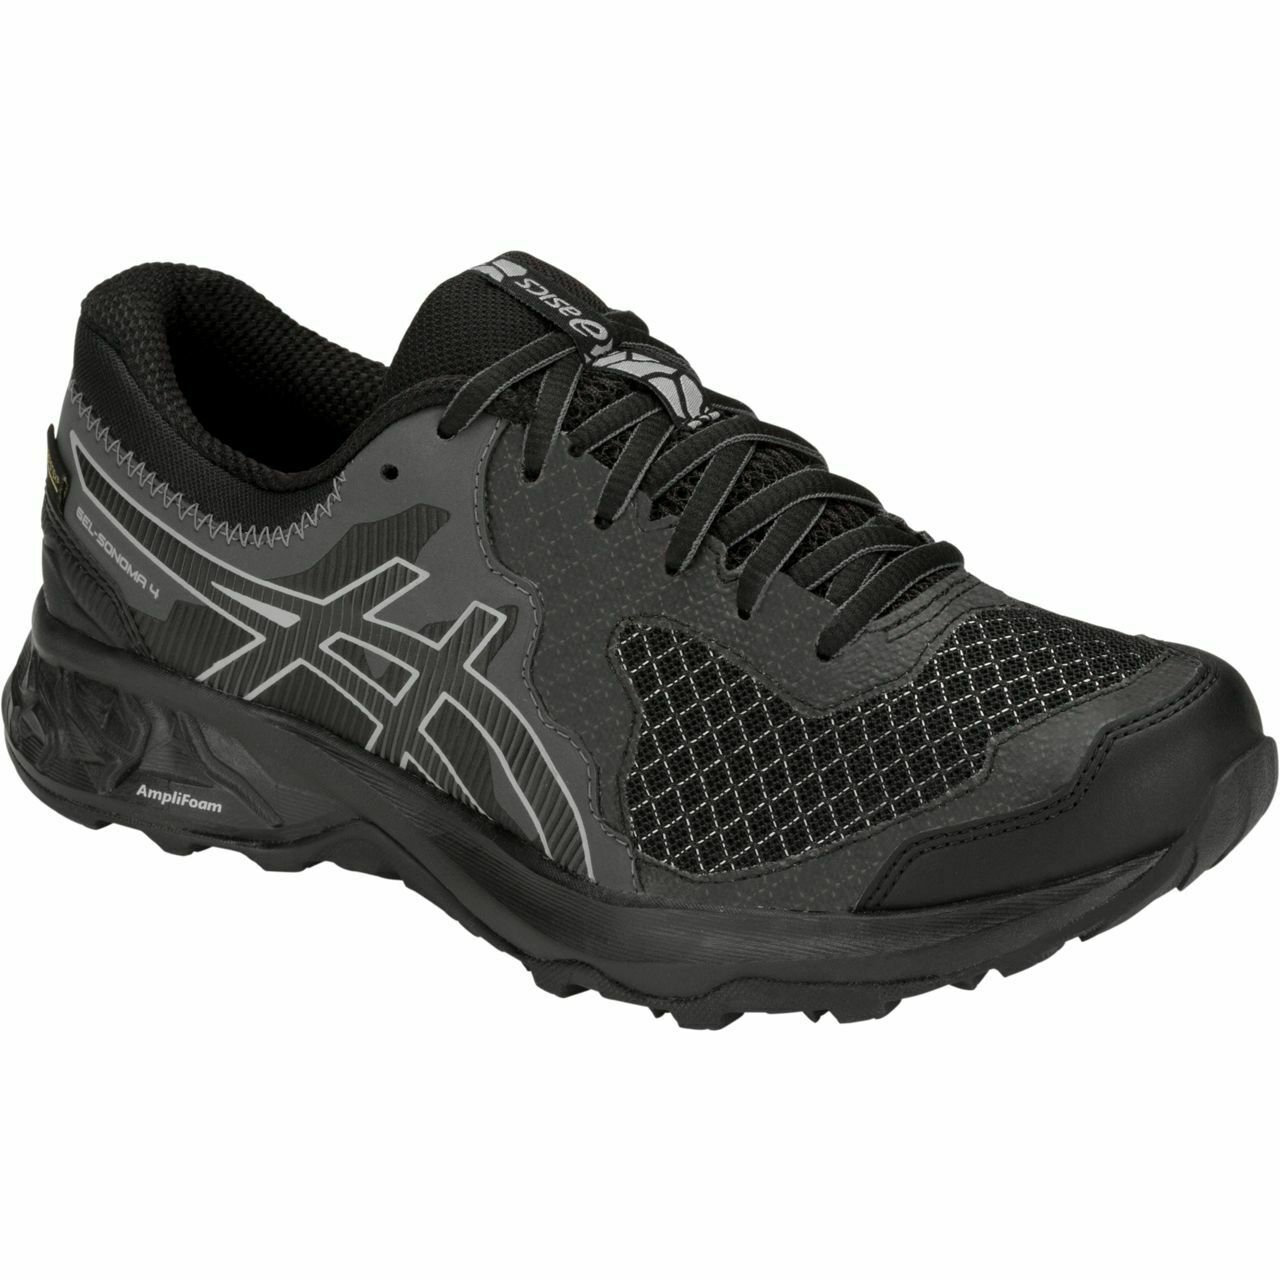 LATEST RELEASE Asics Gel Sonoma 4 GTX Womens Trail Running shoes (B) (001)